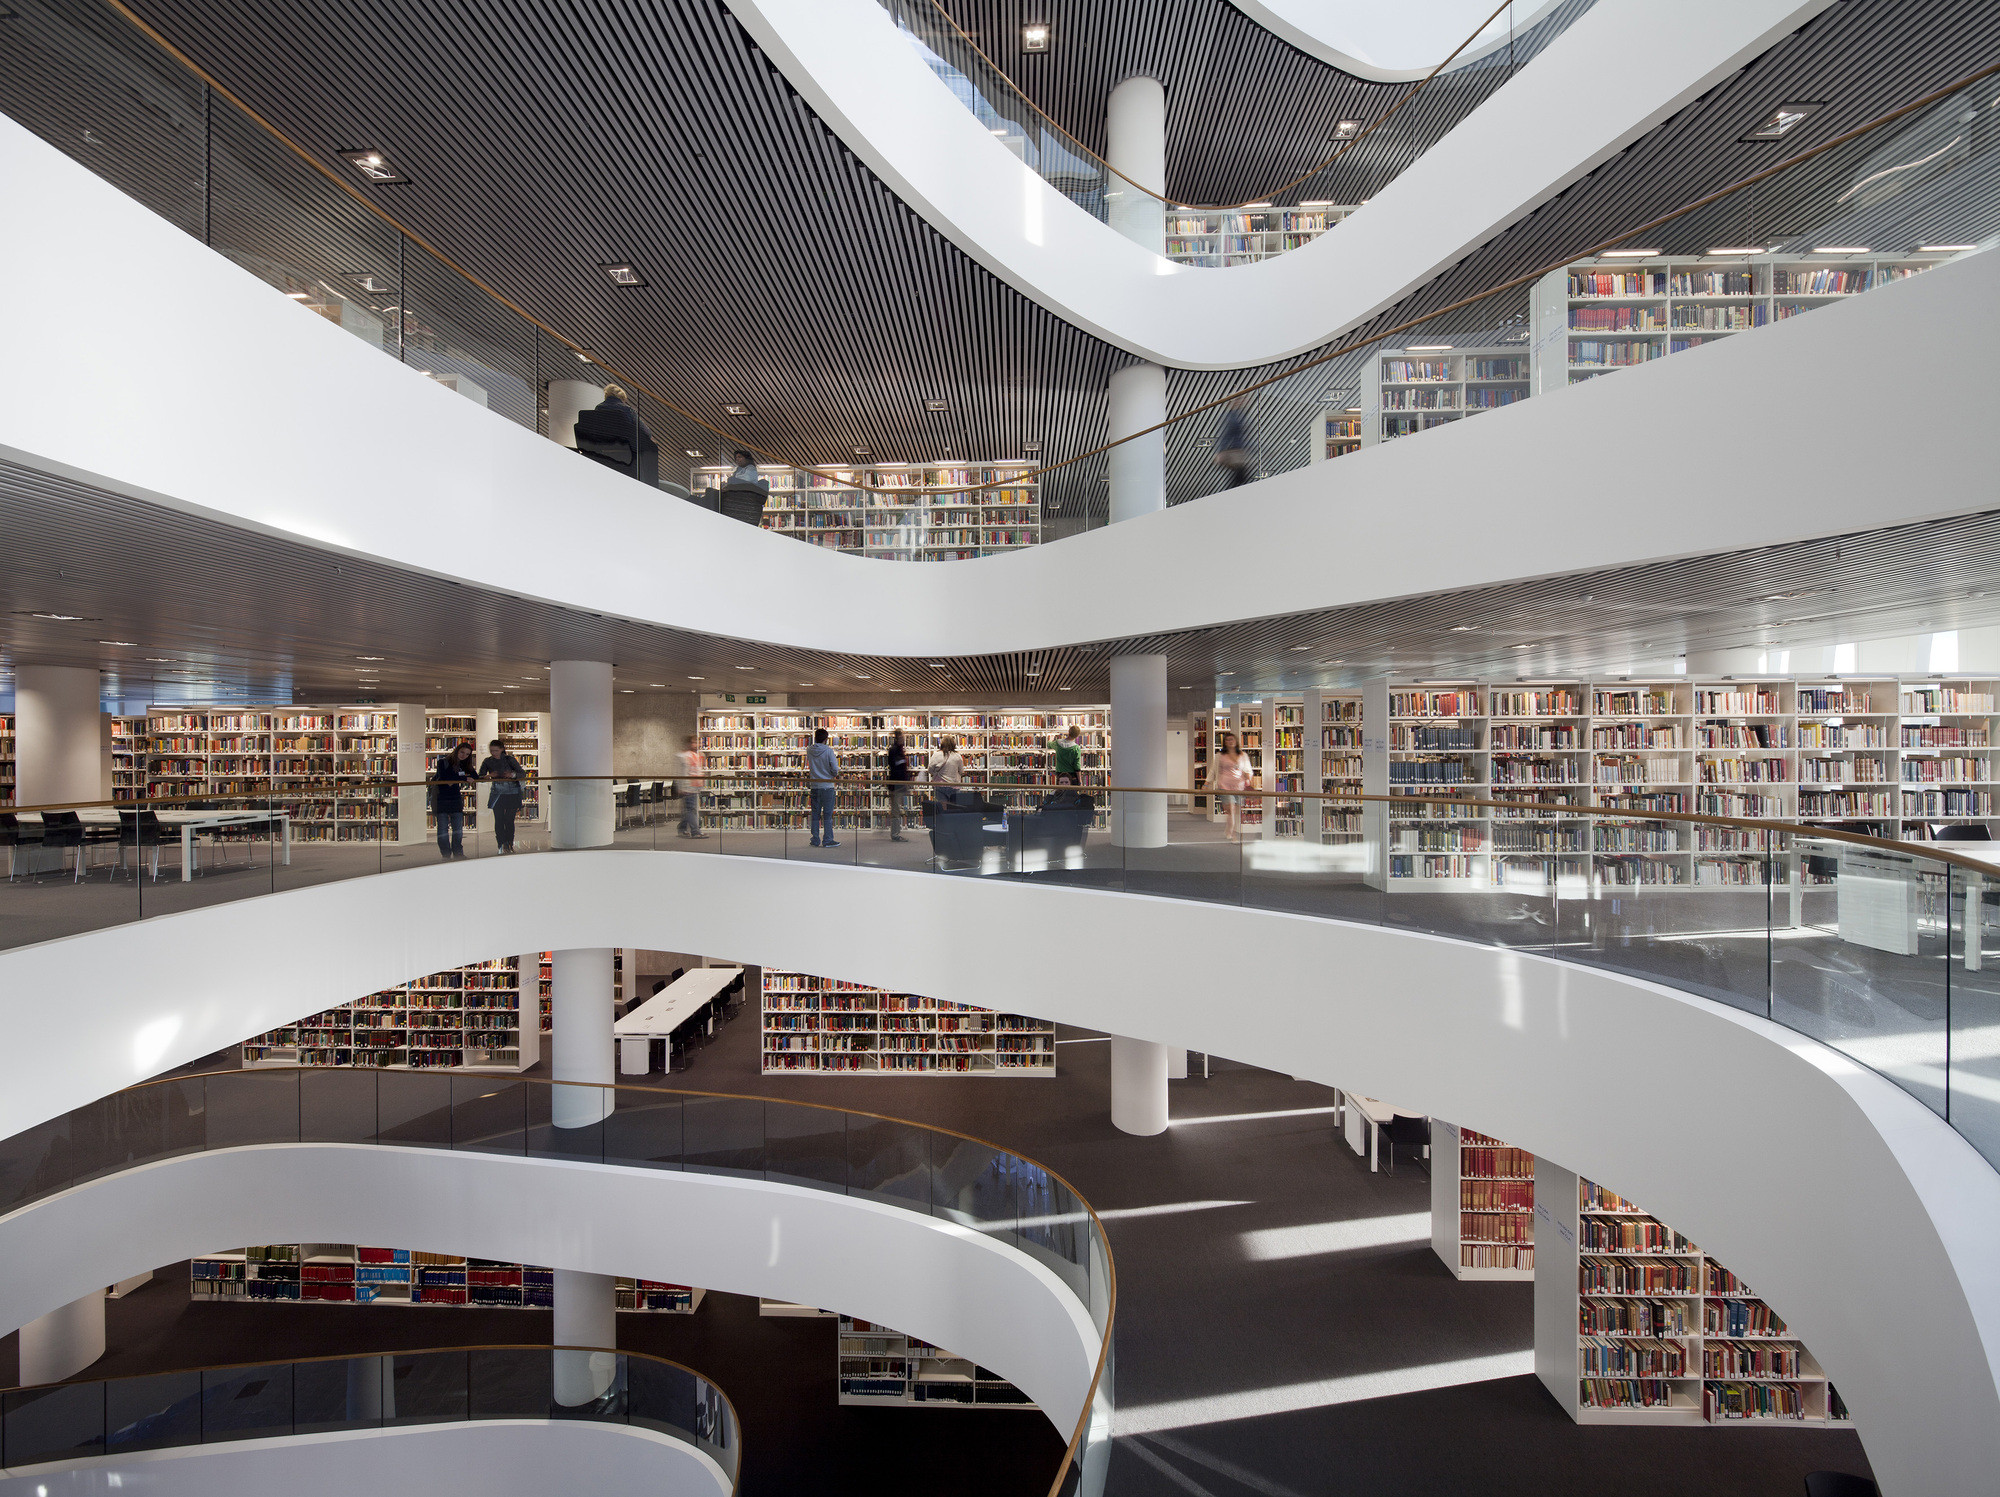 Schmidt Hammer Lassen Sponsors New Danish Library Award, Schmidt Hammer Lassen Architects have been involved in a number of Library designs themselves, including the New Library at the University of Aberdeen. Image © Adam Mørk